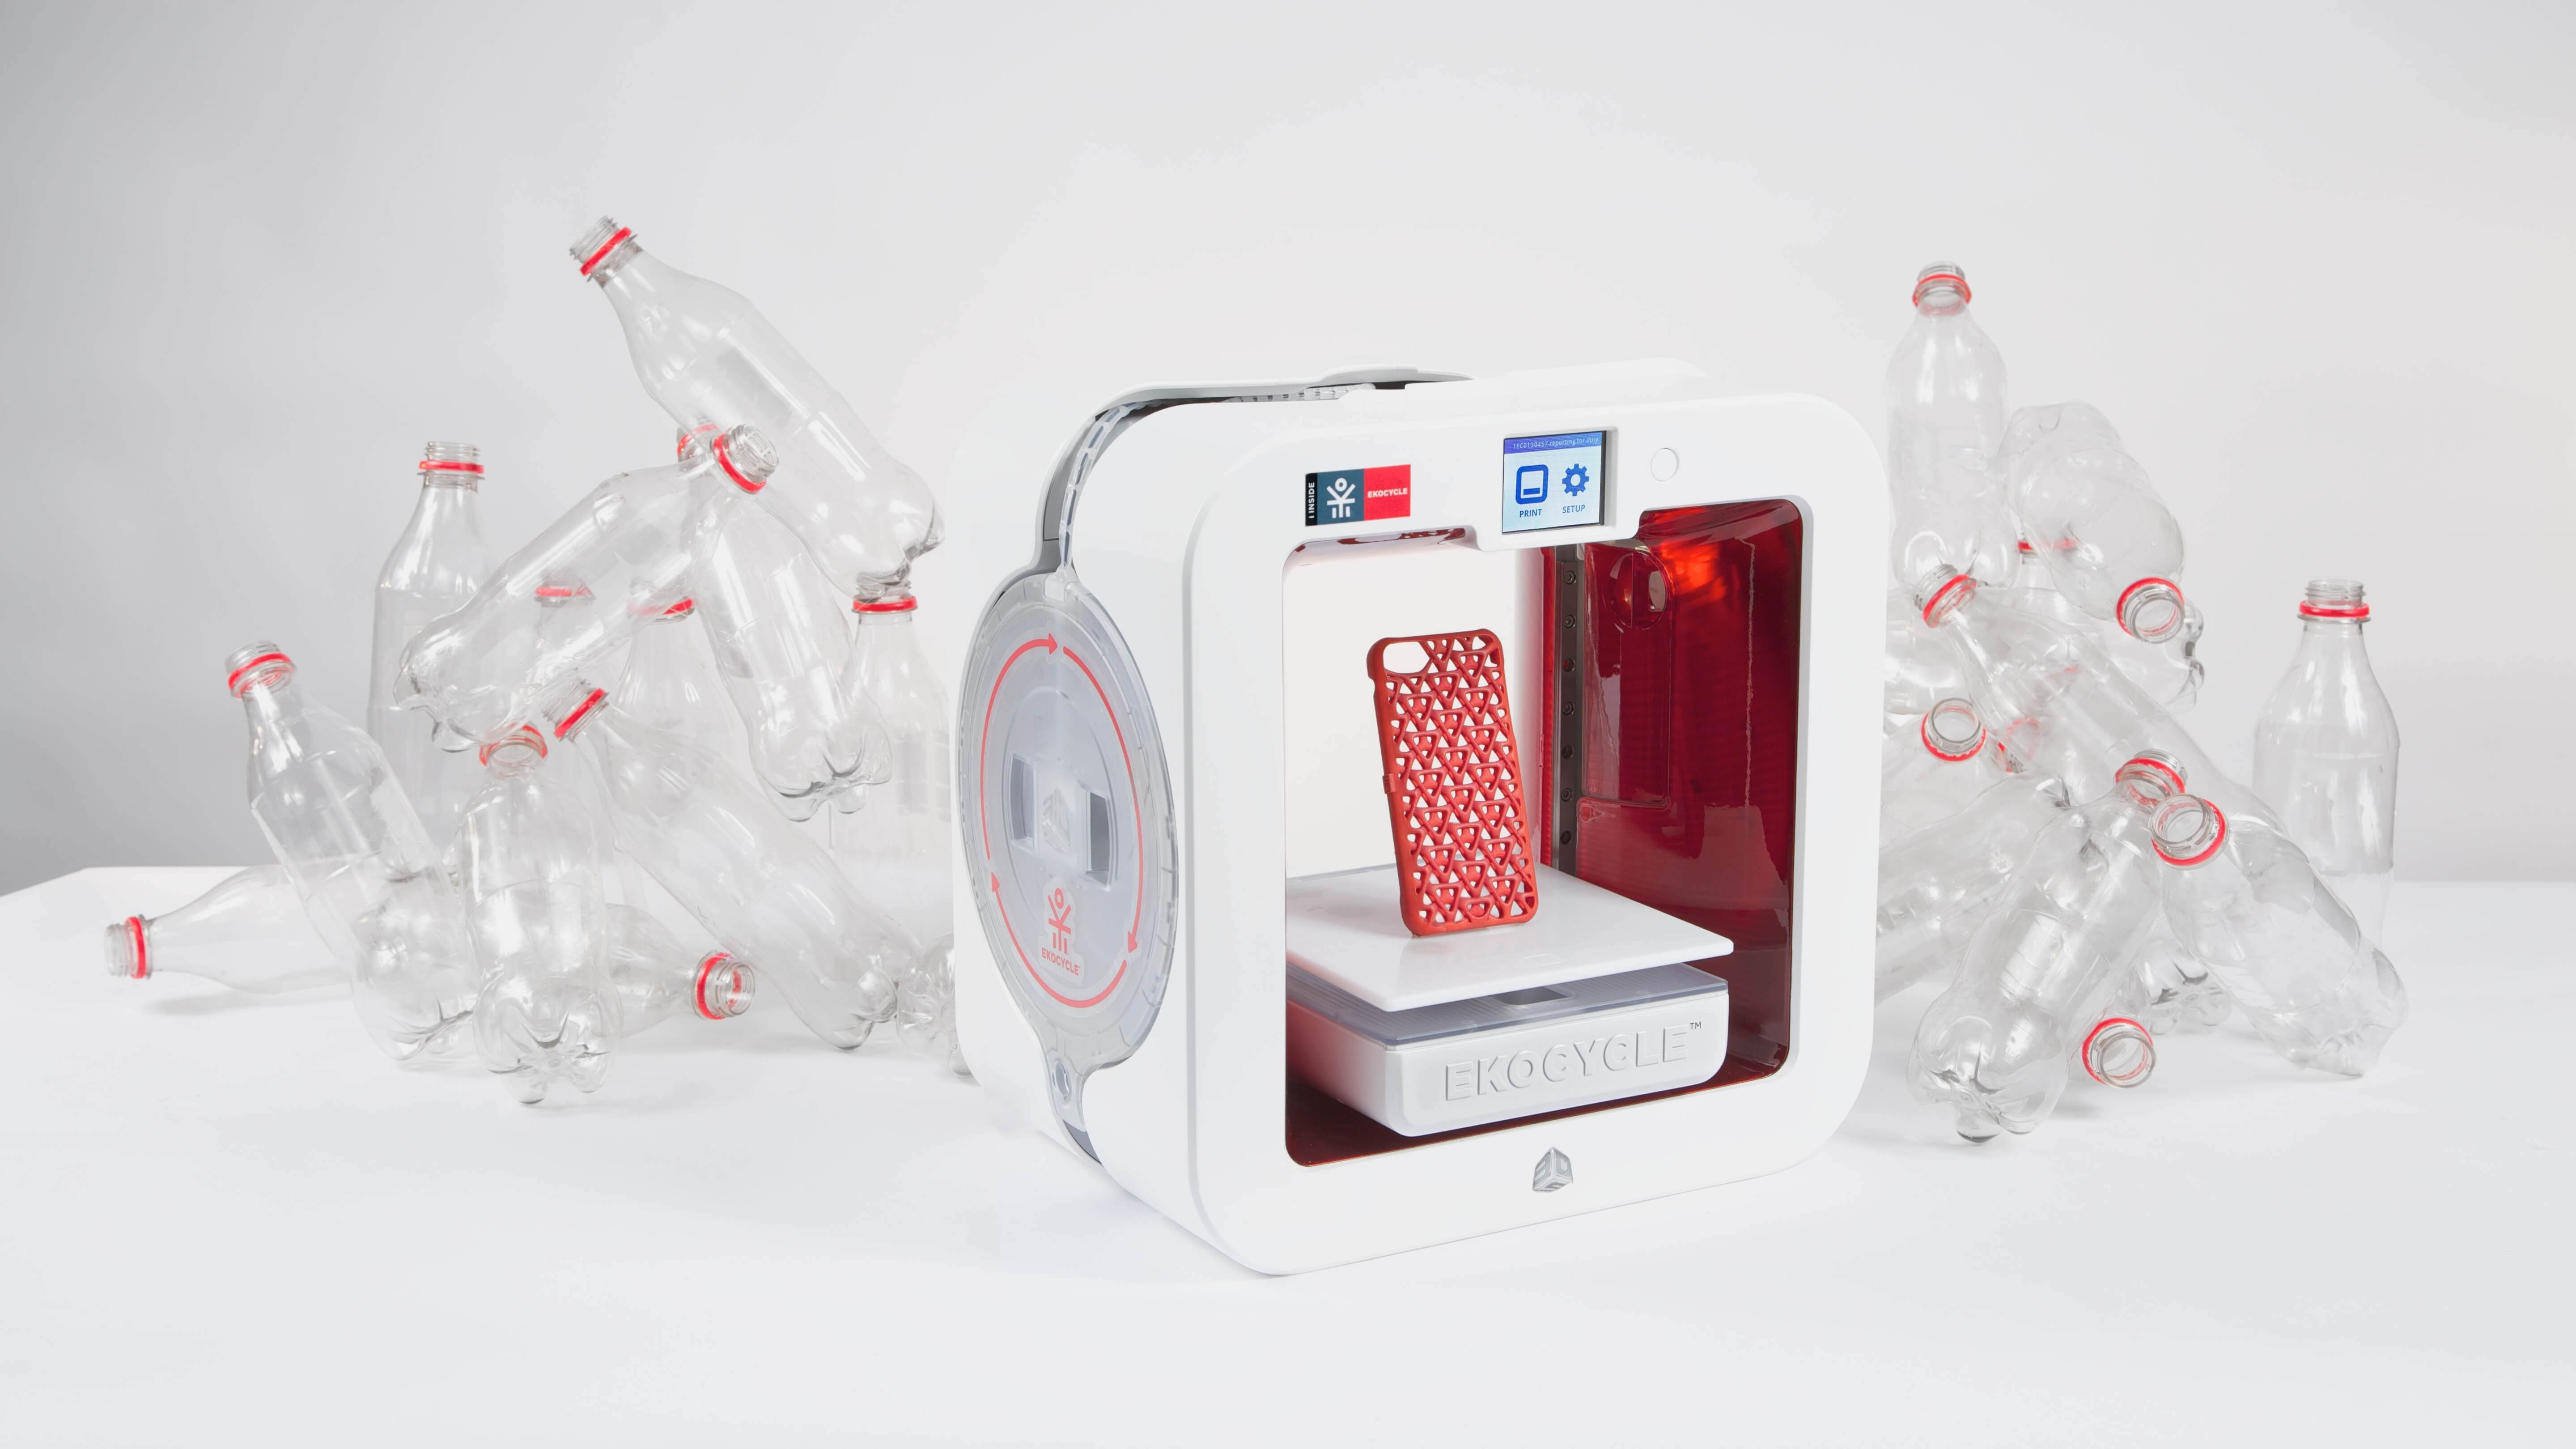 Rachel Park about 3D Printing in 2015 | all3dp.com